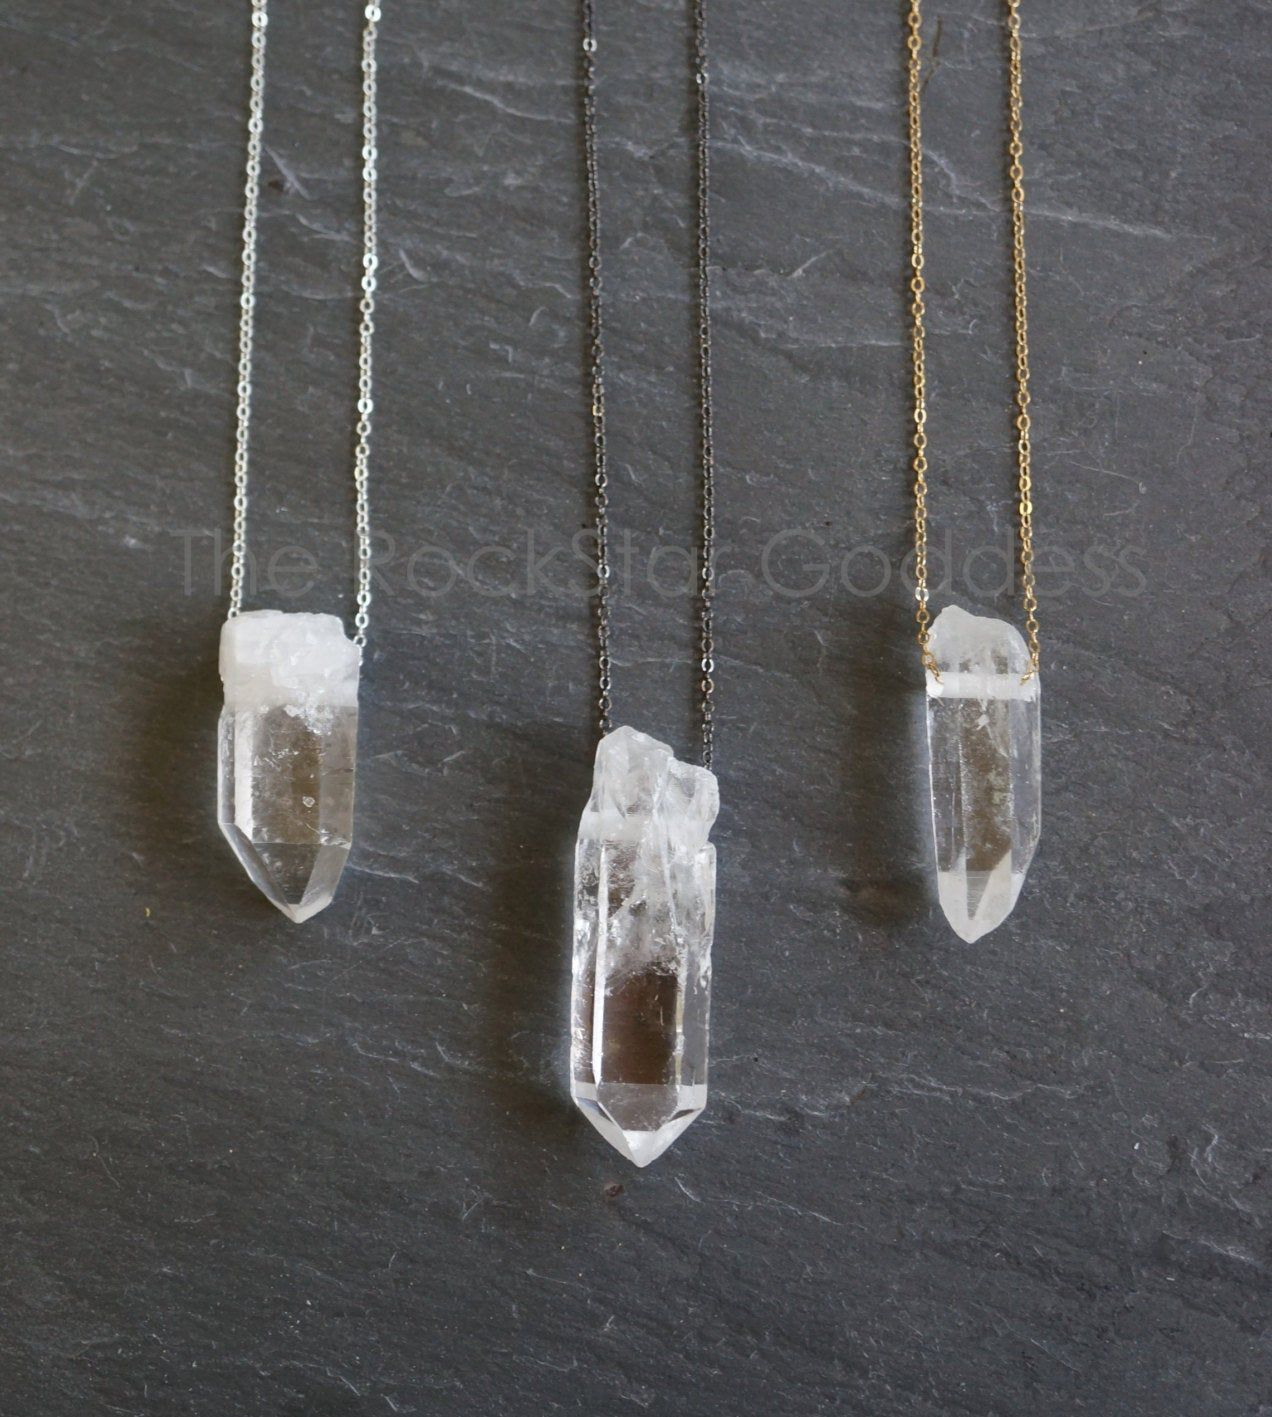 SALE / Raw Quartz Necklace / Crystal Necklace / Quartz Necklace / Crystal Jewelry / Raw Quartz Jewelry / Raw Quartz Pendant